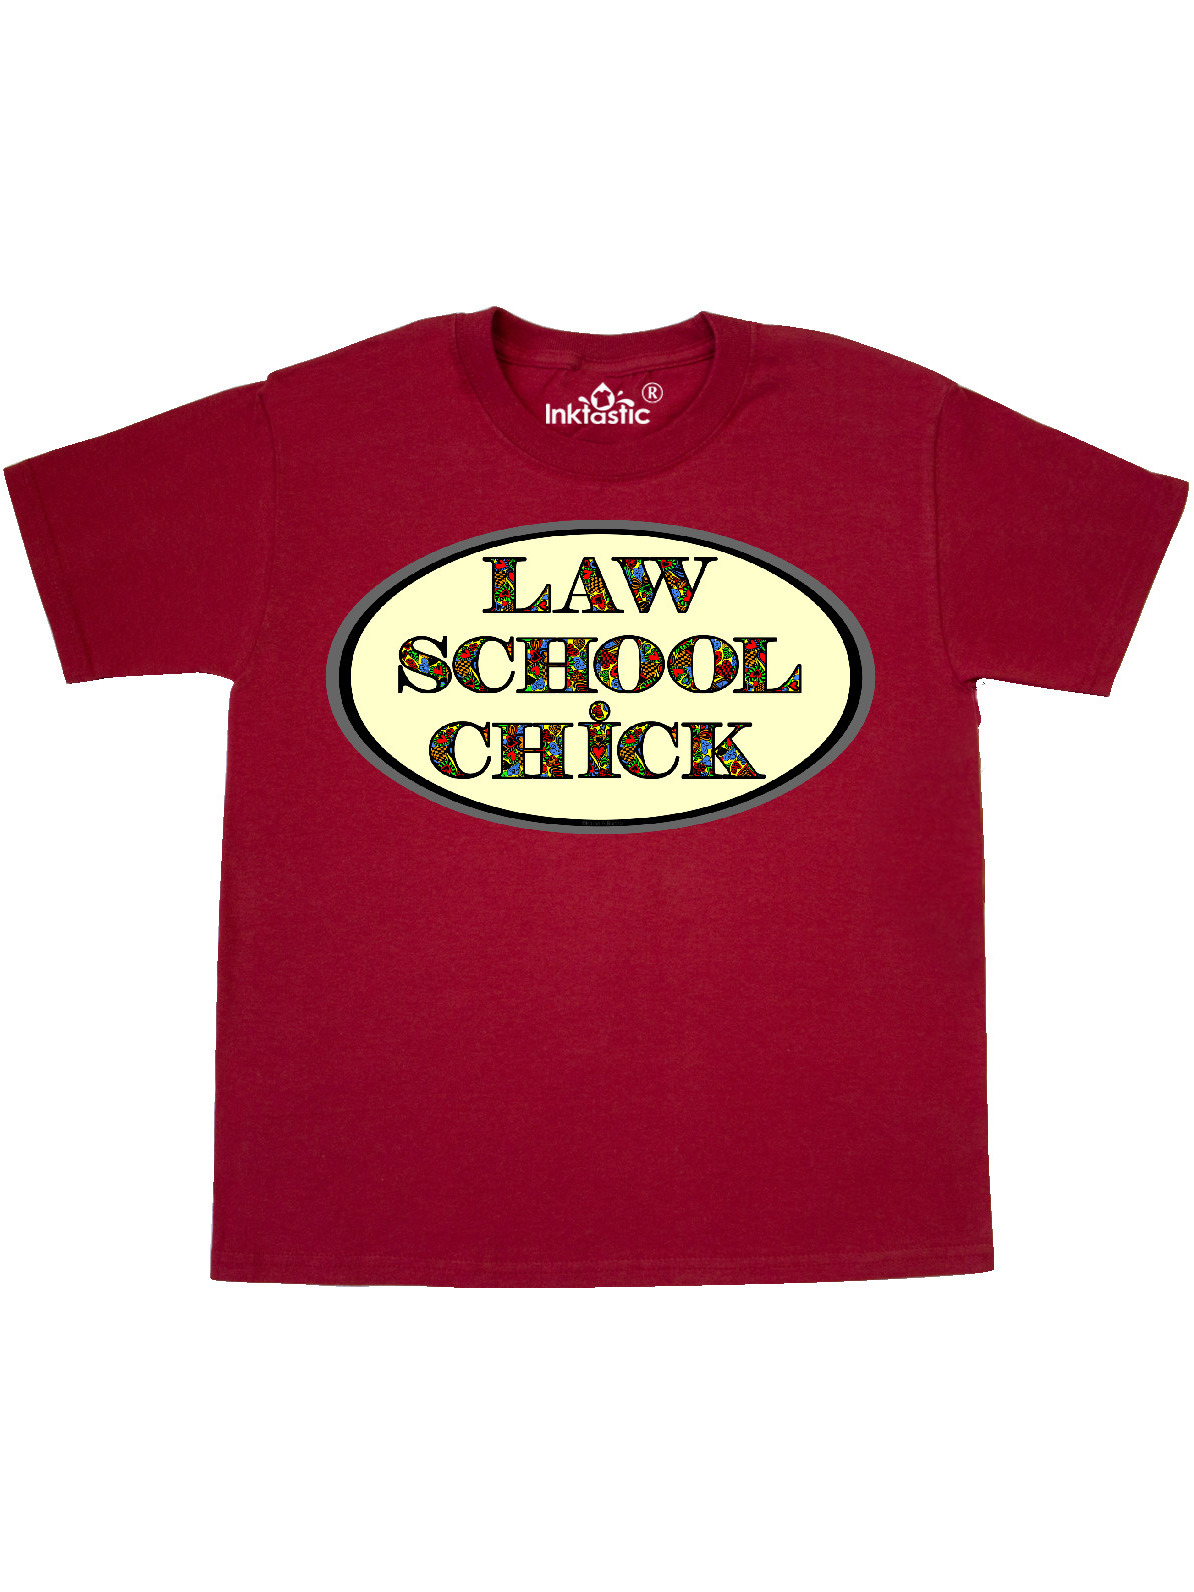 inktastic Law School Chick Heart Text Toddler T-Shirt